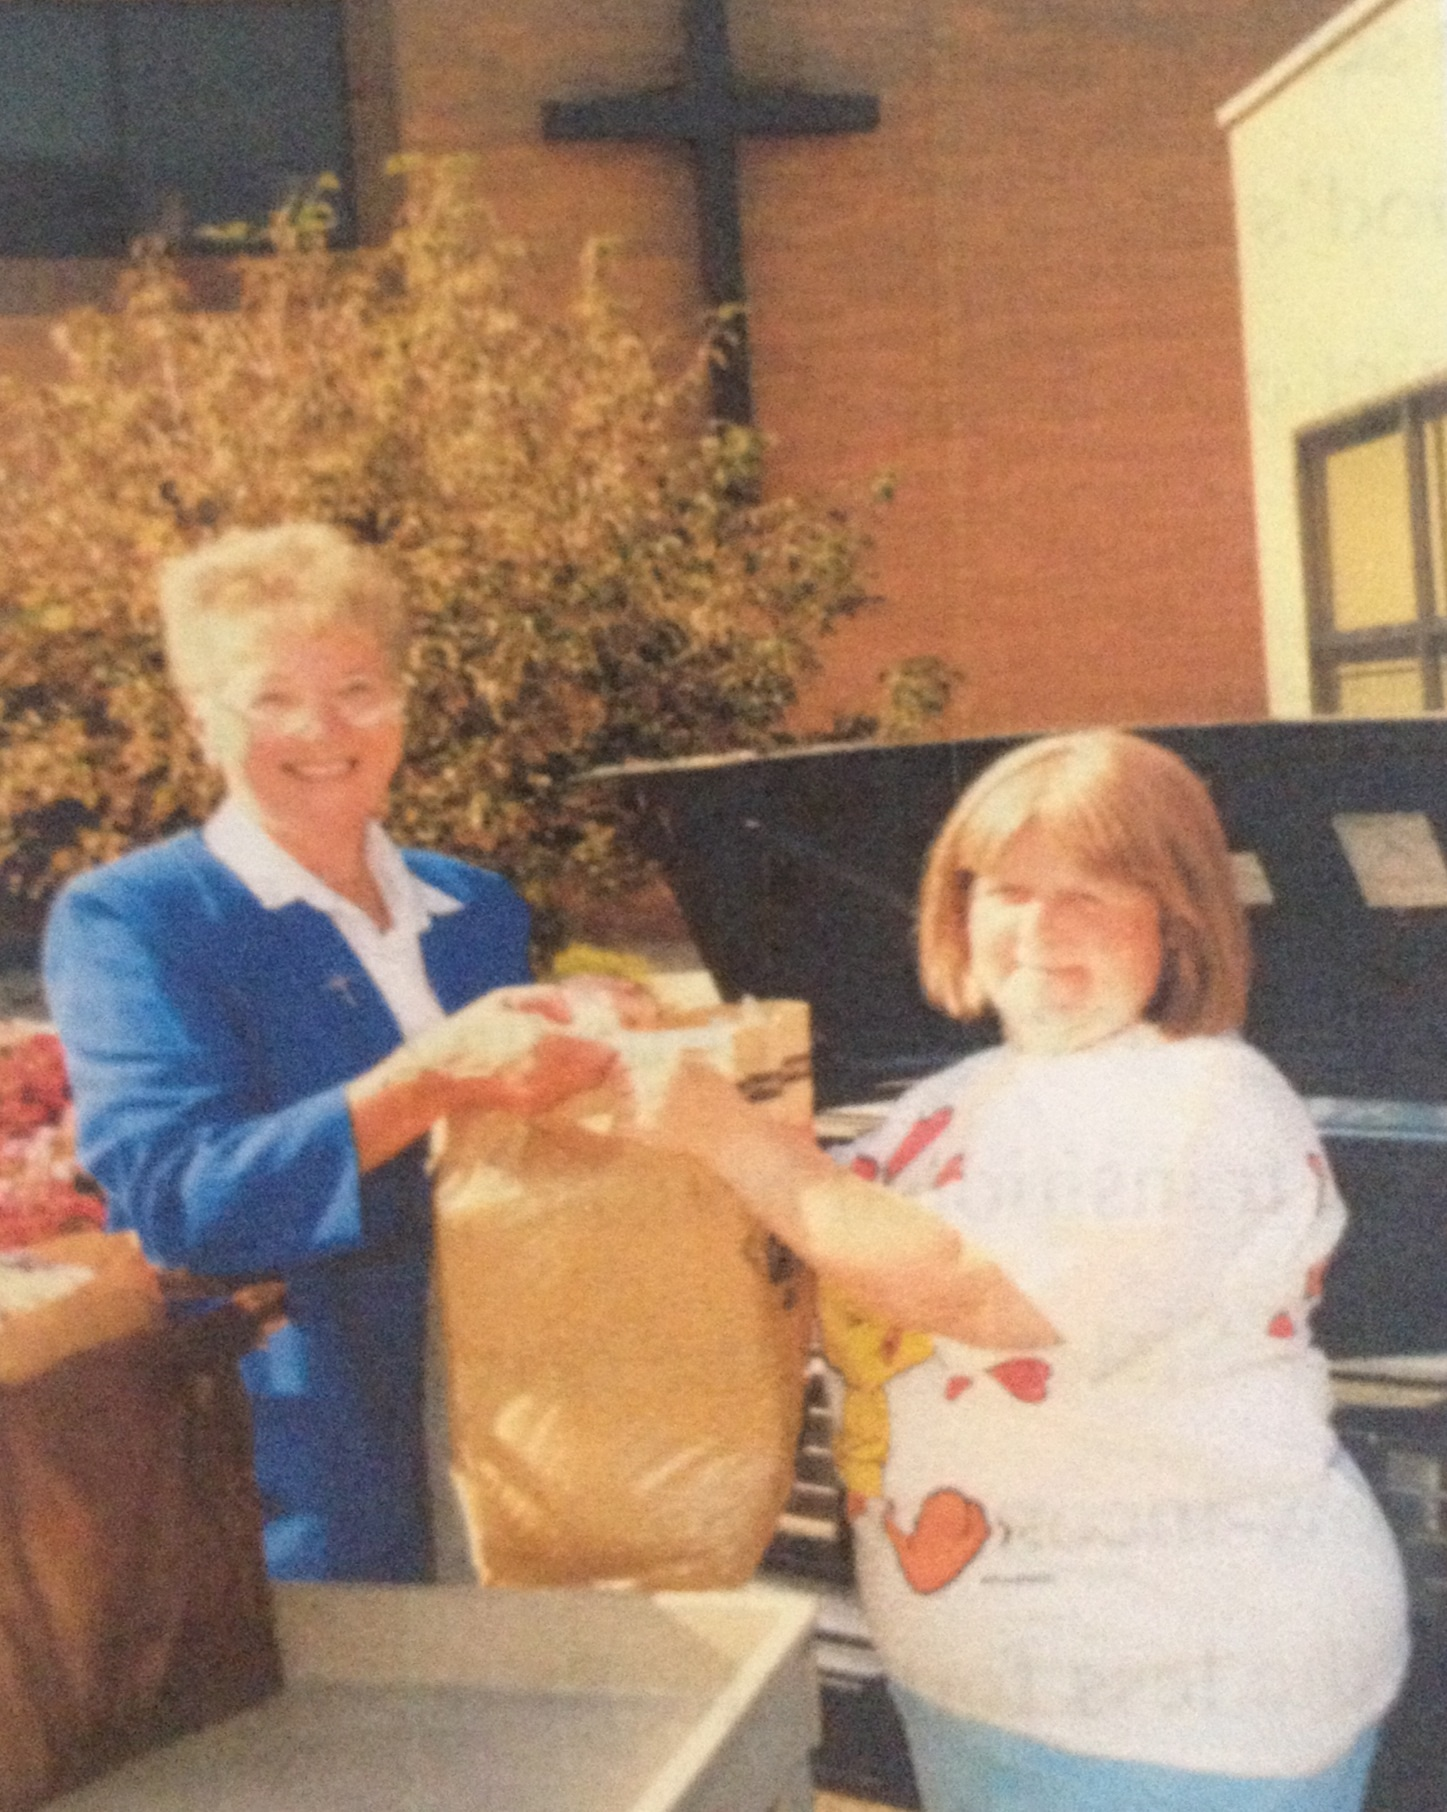 Sister Kathryn gave groceries to a client at the Holy Redeemer Food Cupboard opening in 1995.